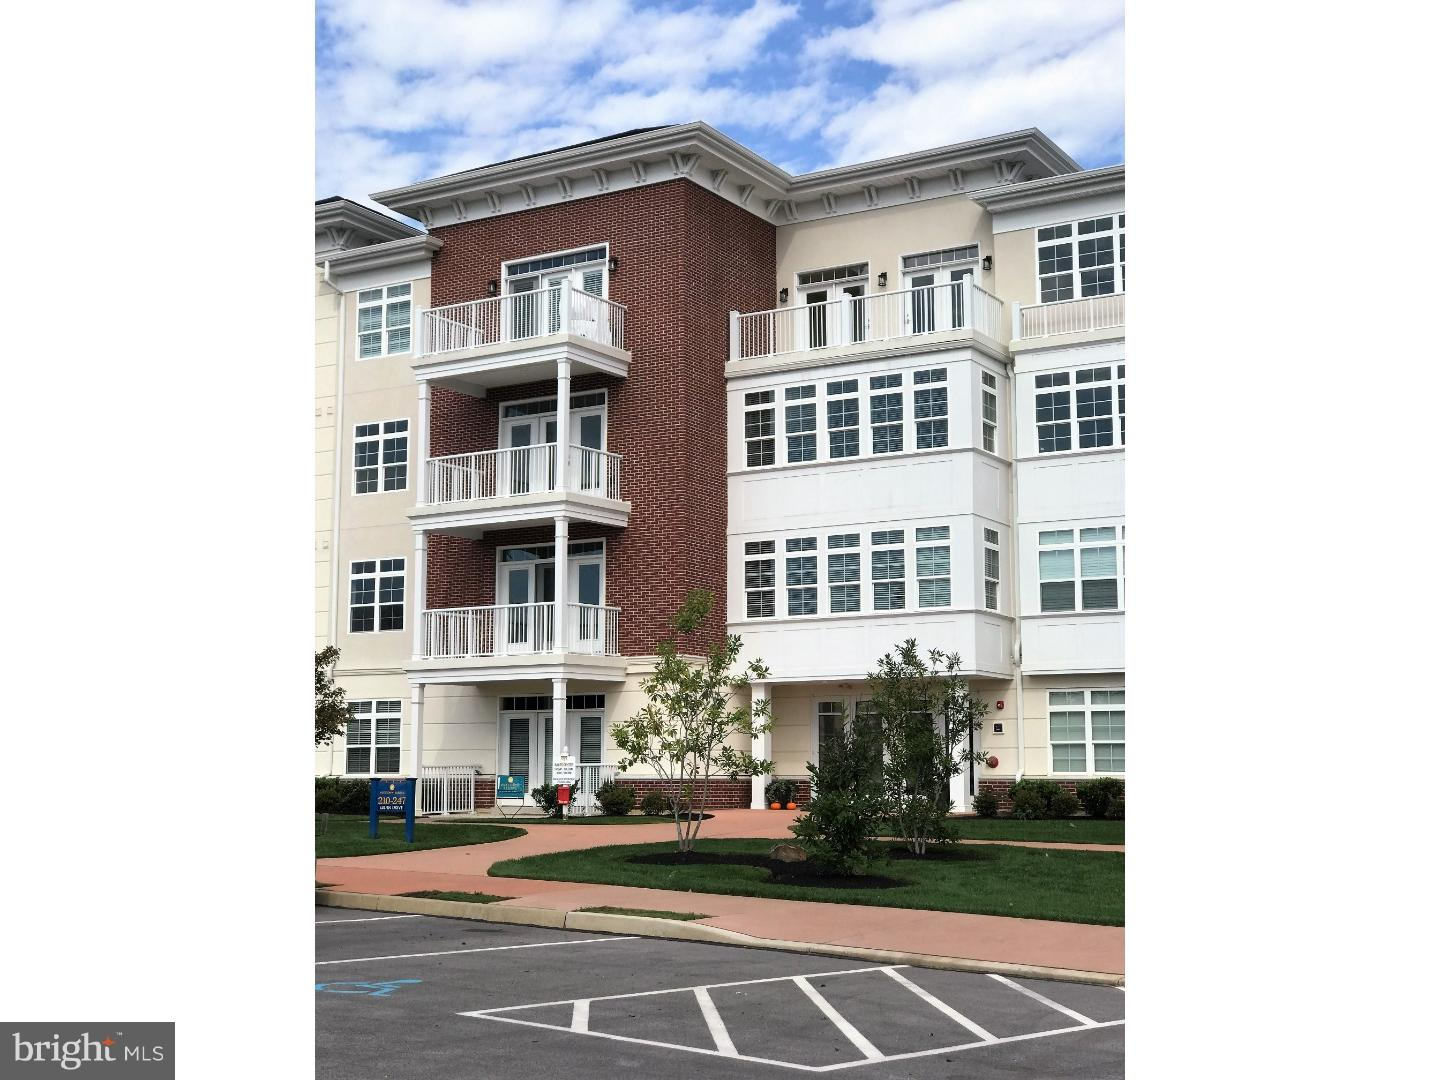 244 Gilpin Drive #244 West Chester , PA 19382